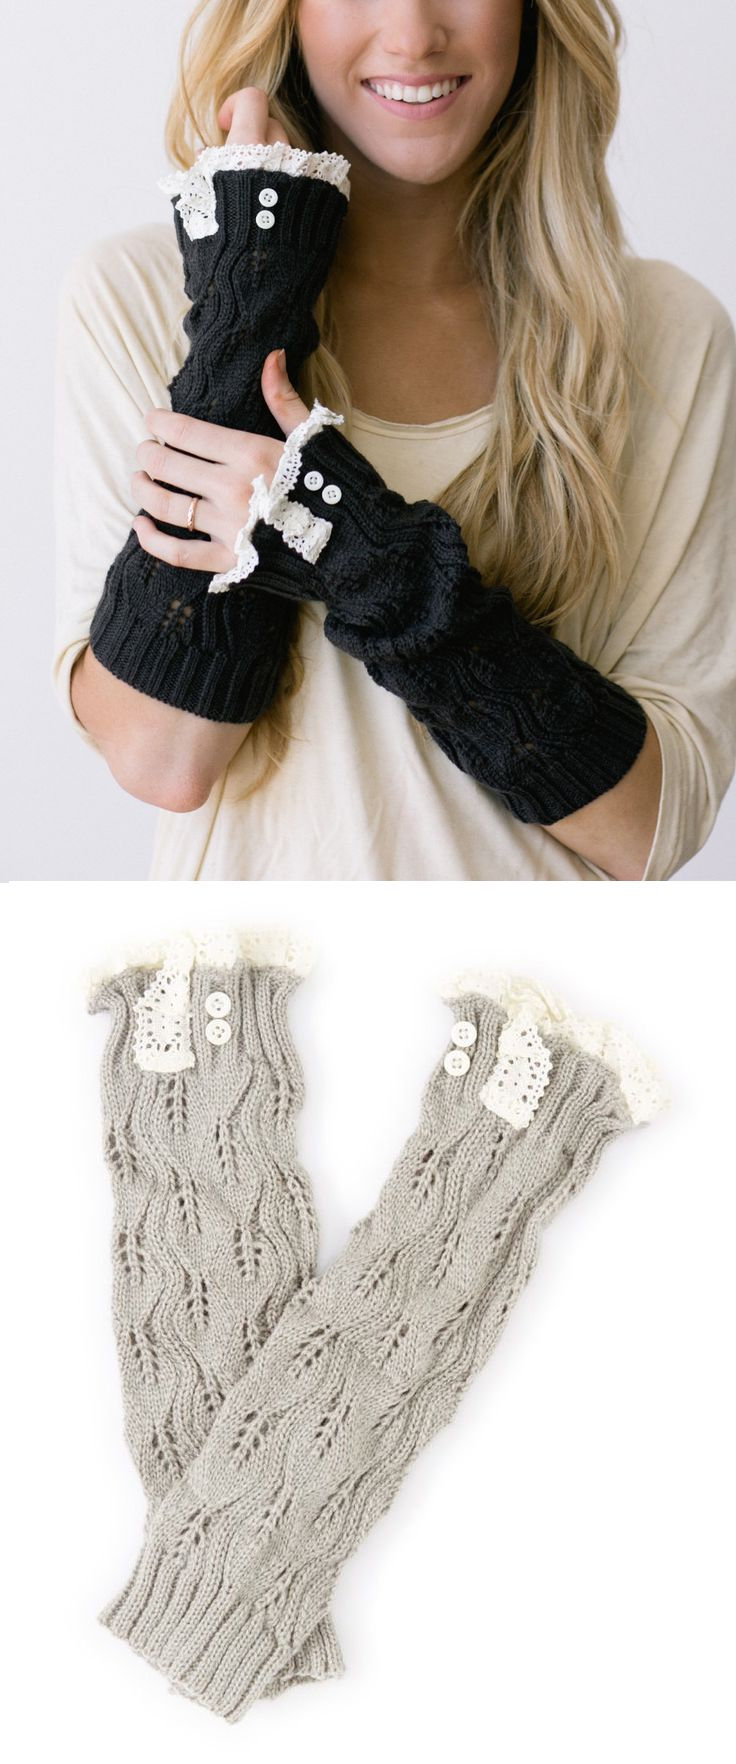 Arm Warmers   Products I Love   Pinterest   Ropa, Calcetines crochet ...